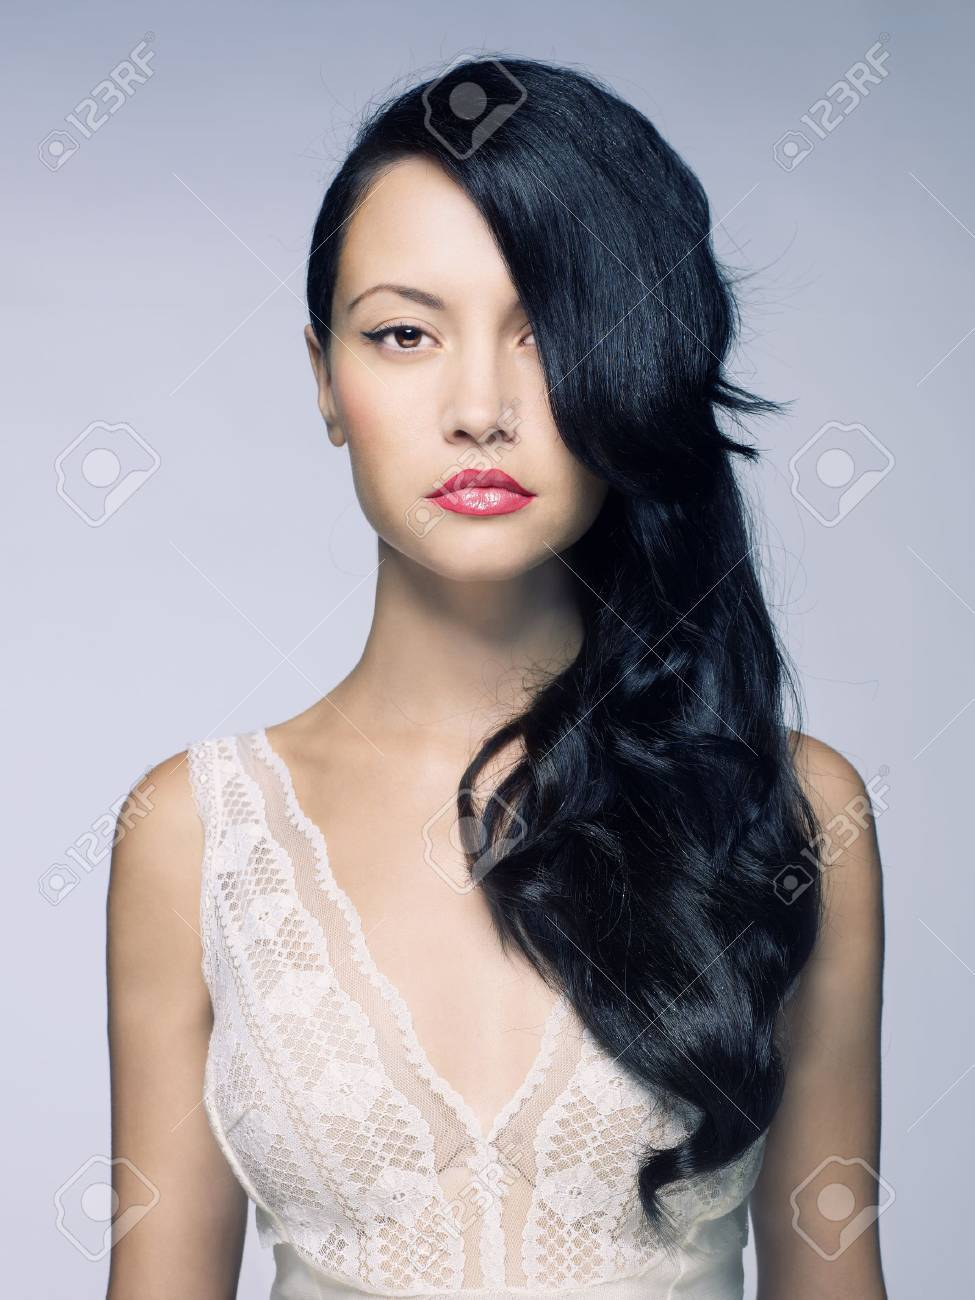 Photo of young beautiful lady with magnificent dark hair Stock Photo - 11567690